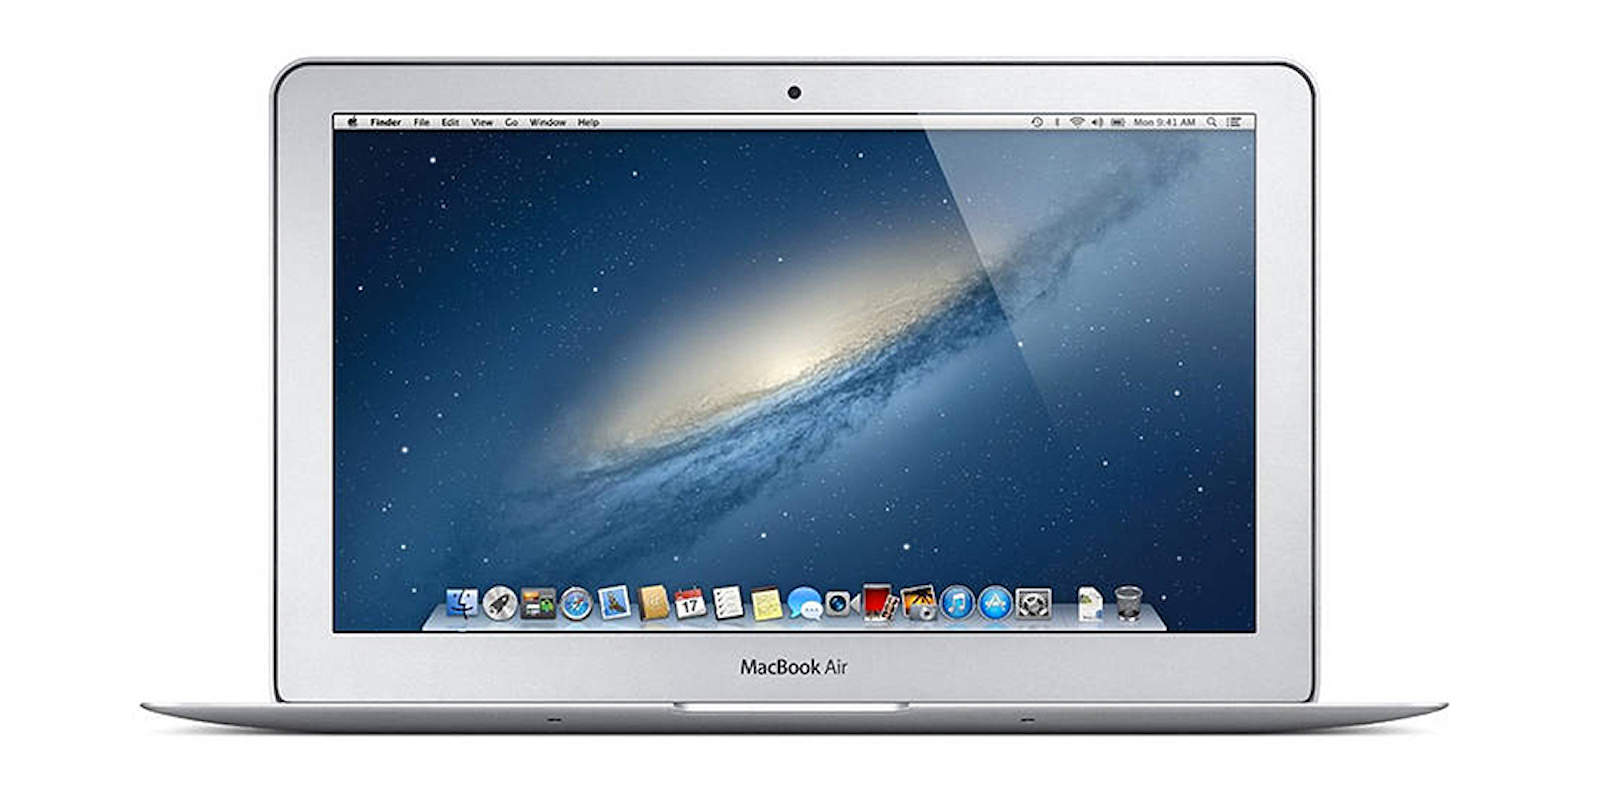 $500 off refurbished MacBook Air, $80 off a GoPro bundle and